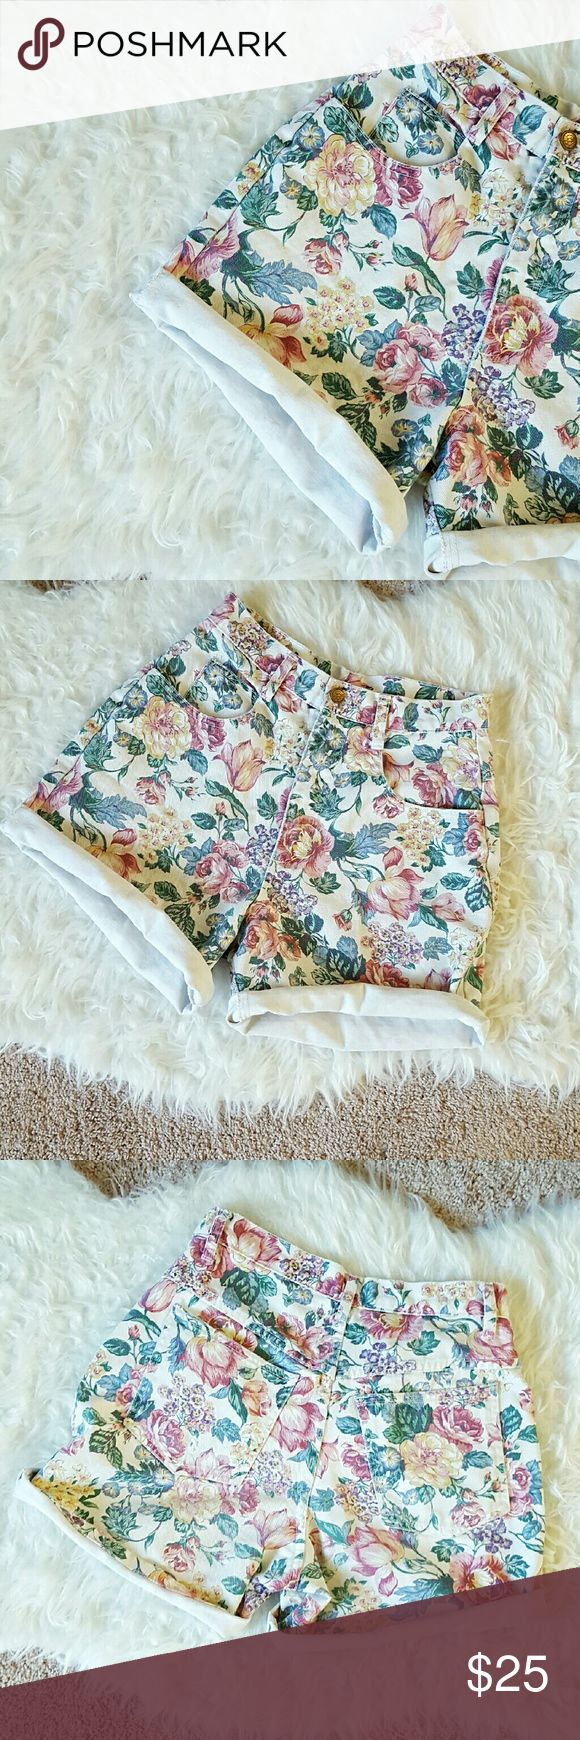 "High Waisted Vintage Floral Denim Shorts Channel your inner Kelly Kapowski in these awesome vintage shorts. High waisted, floral print on denim. Approx 3"" inseam that can be rolled to desired length, overall approx 18"" length. Excellent vintage condition, one small defect on back pocket (shown in last pic) that adds to the vintage charm. Vintage size 8, closer to modern M. Vintage  Shorts Jean Shorts"